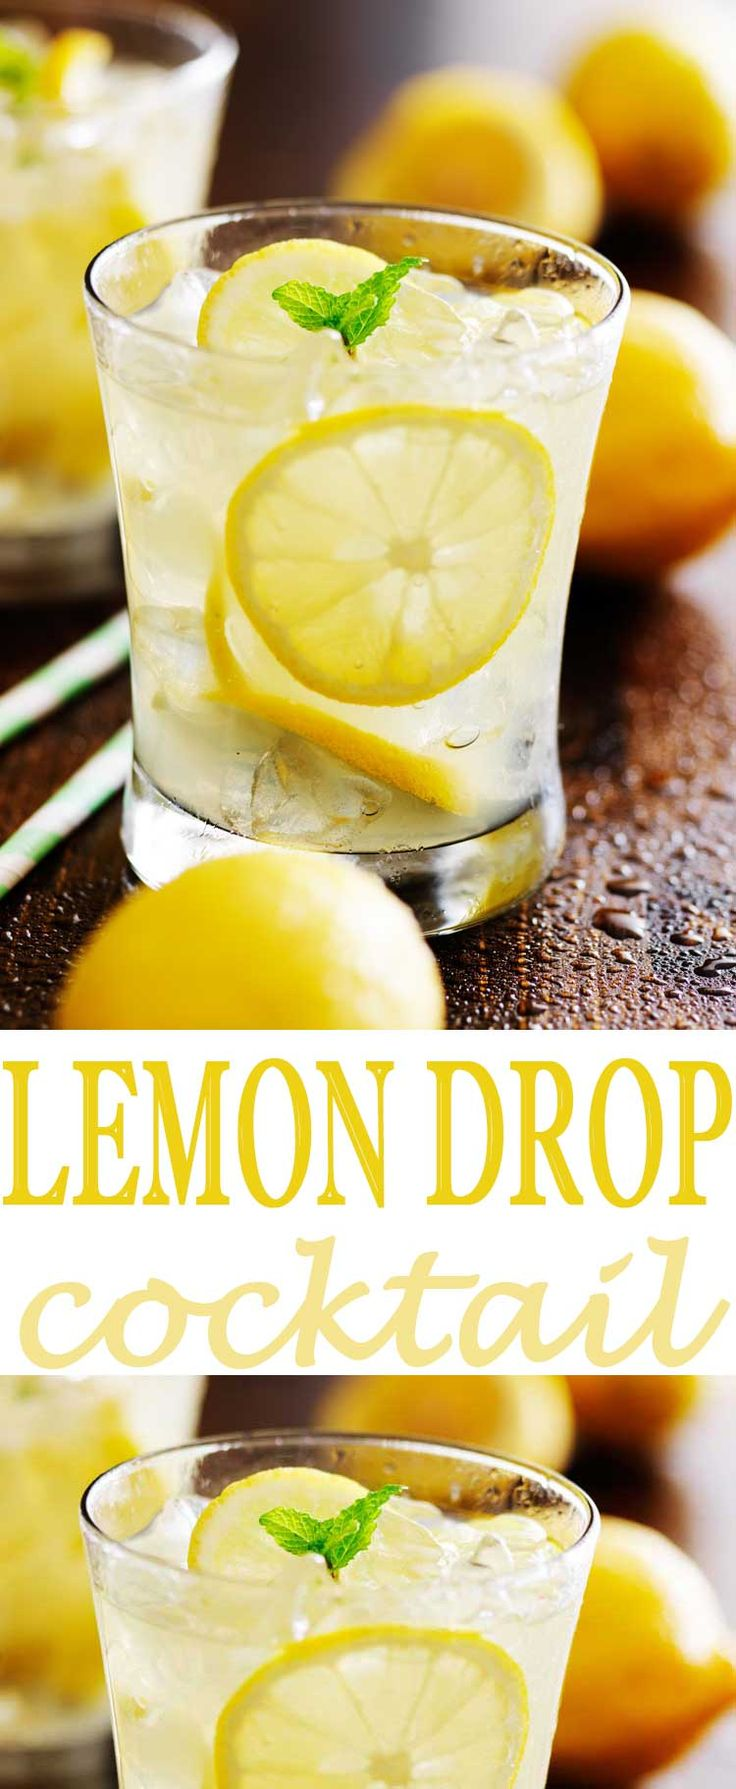 This is the best lemon drop cocktail around. You'll love how easy it is to mix up and how delicious it is. Try this lemon cocktail recipe.